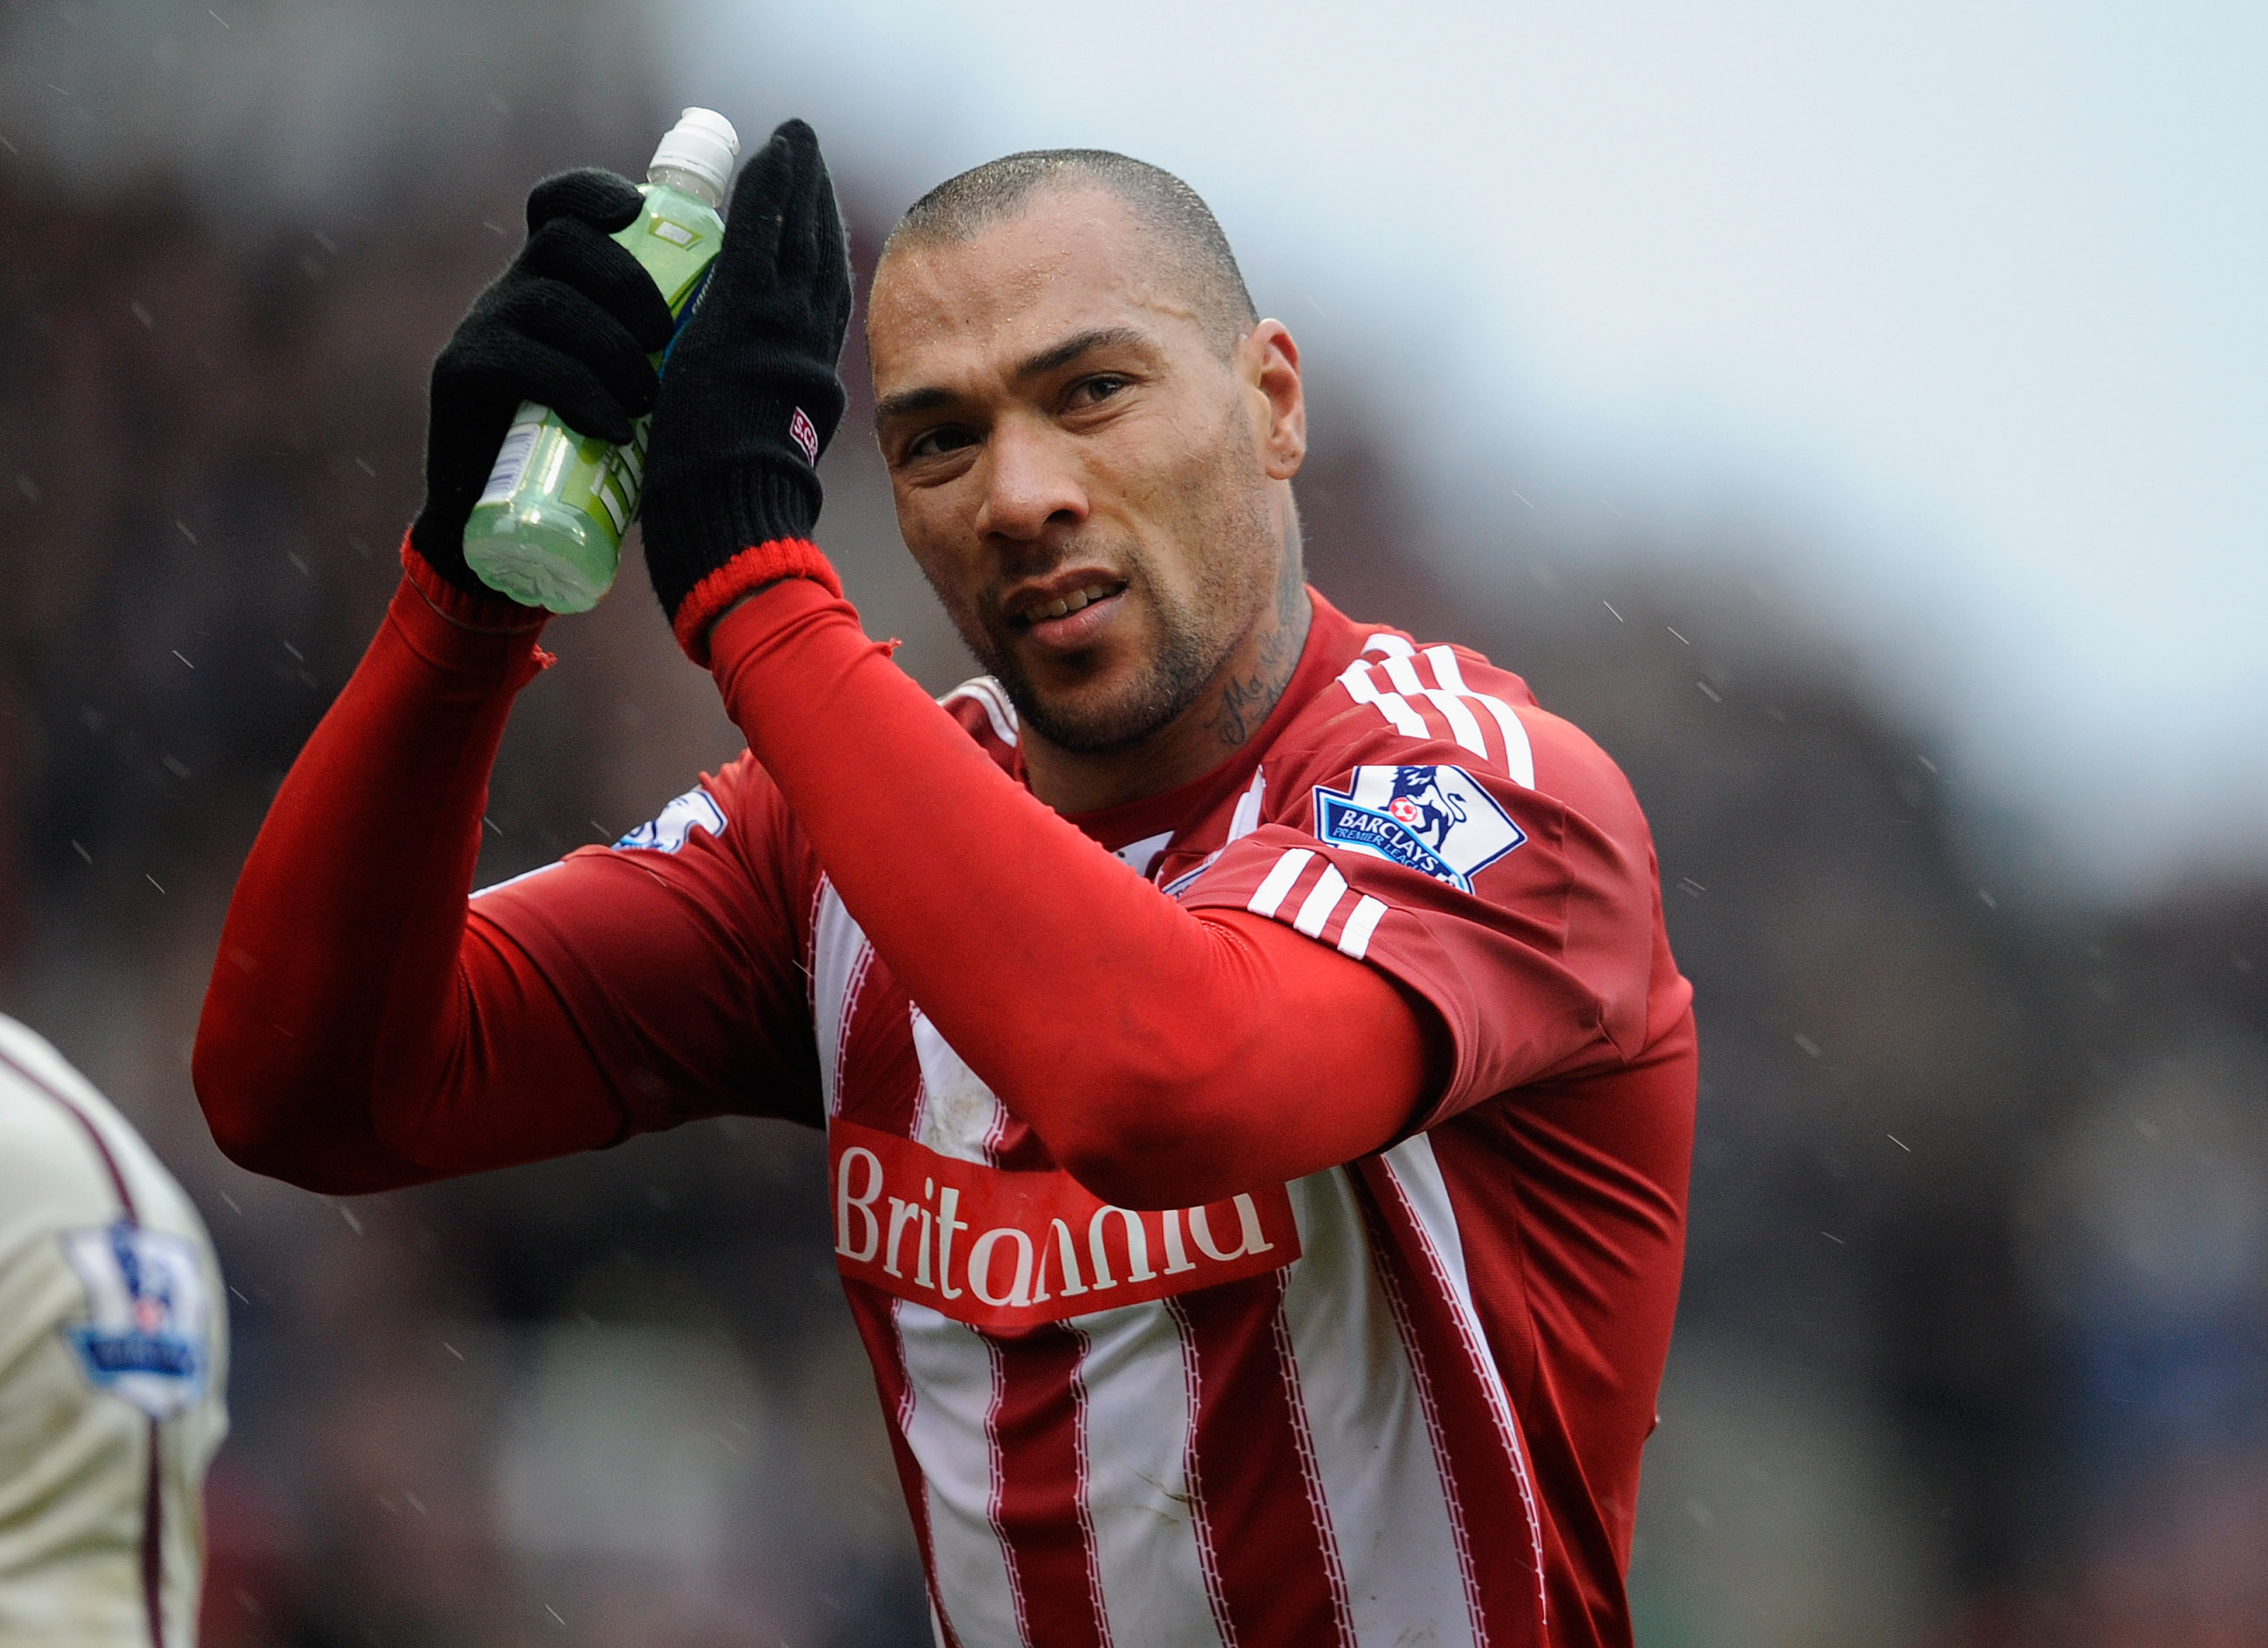 STOKE ON TRENT, ENGLAND - FEBRUARY 05: John Carew of Stoke salutes the fans after the Barclays Premier League match between Stoke City and Sunderland at the Britannia Stadium on February 5, 2011 in Stoke on Trent, England.  (Photo by Michael Regan/Getty I